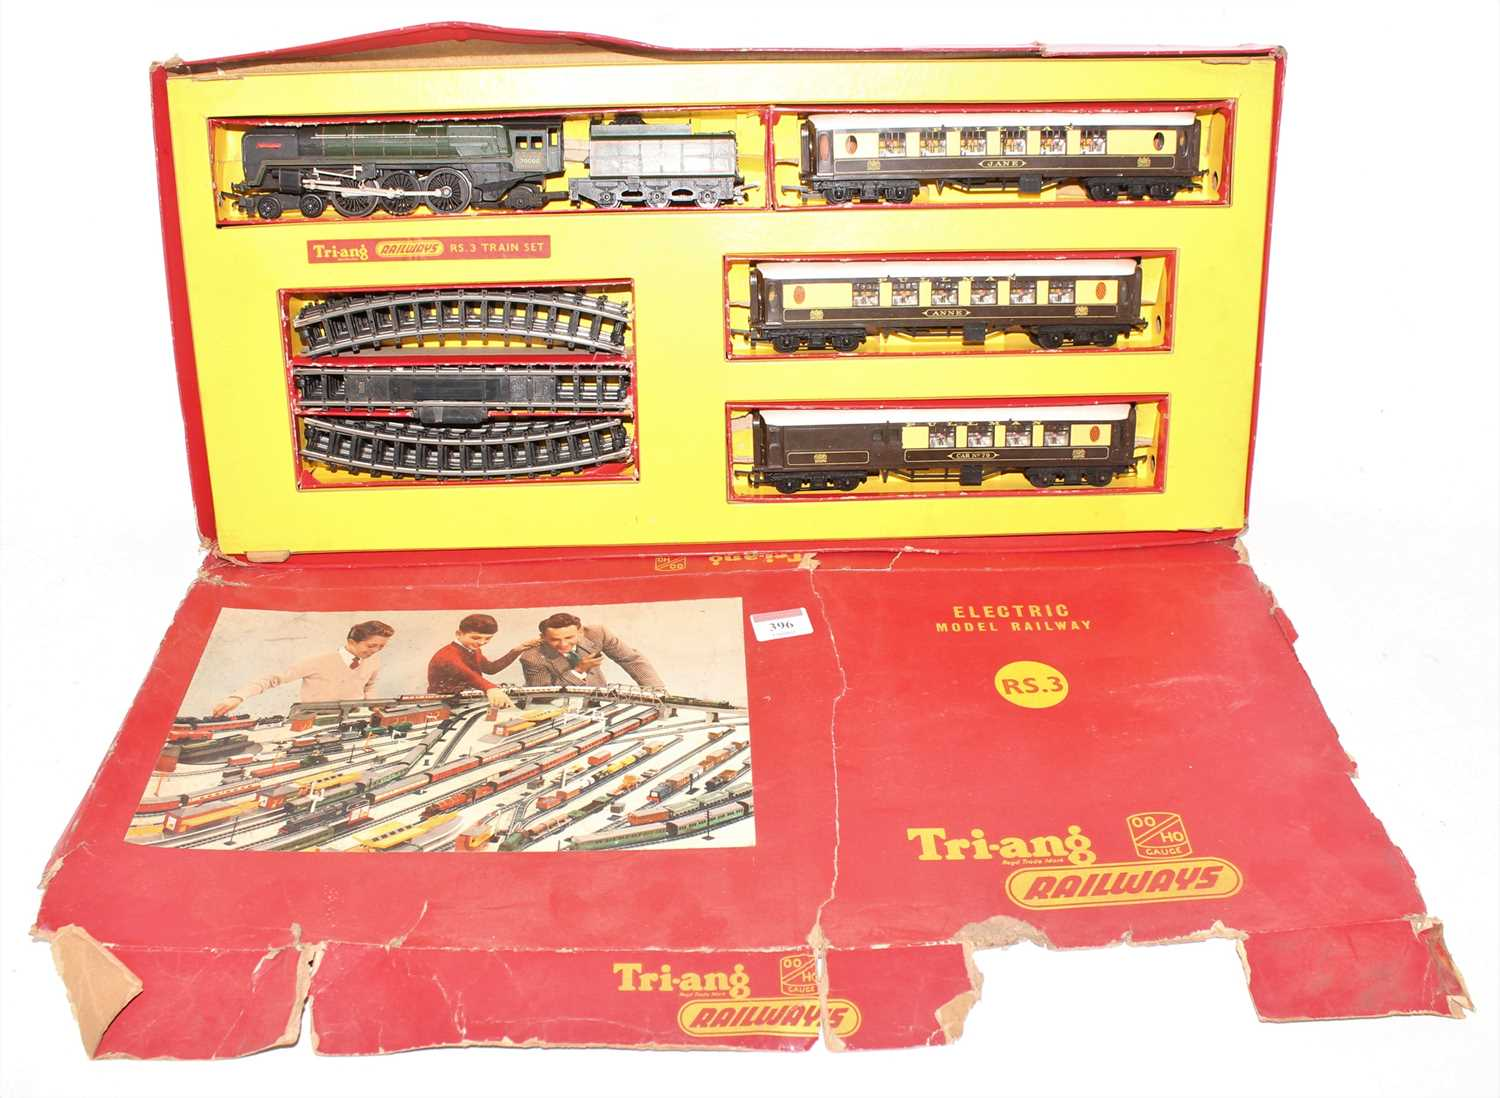 Triang RS3 Train Set, comprising Britannia Loco 70000 and tender, with 3 Pullman coaches, and